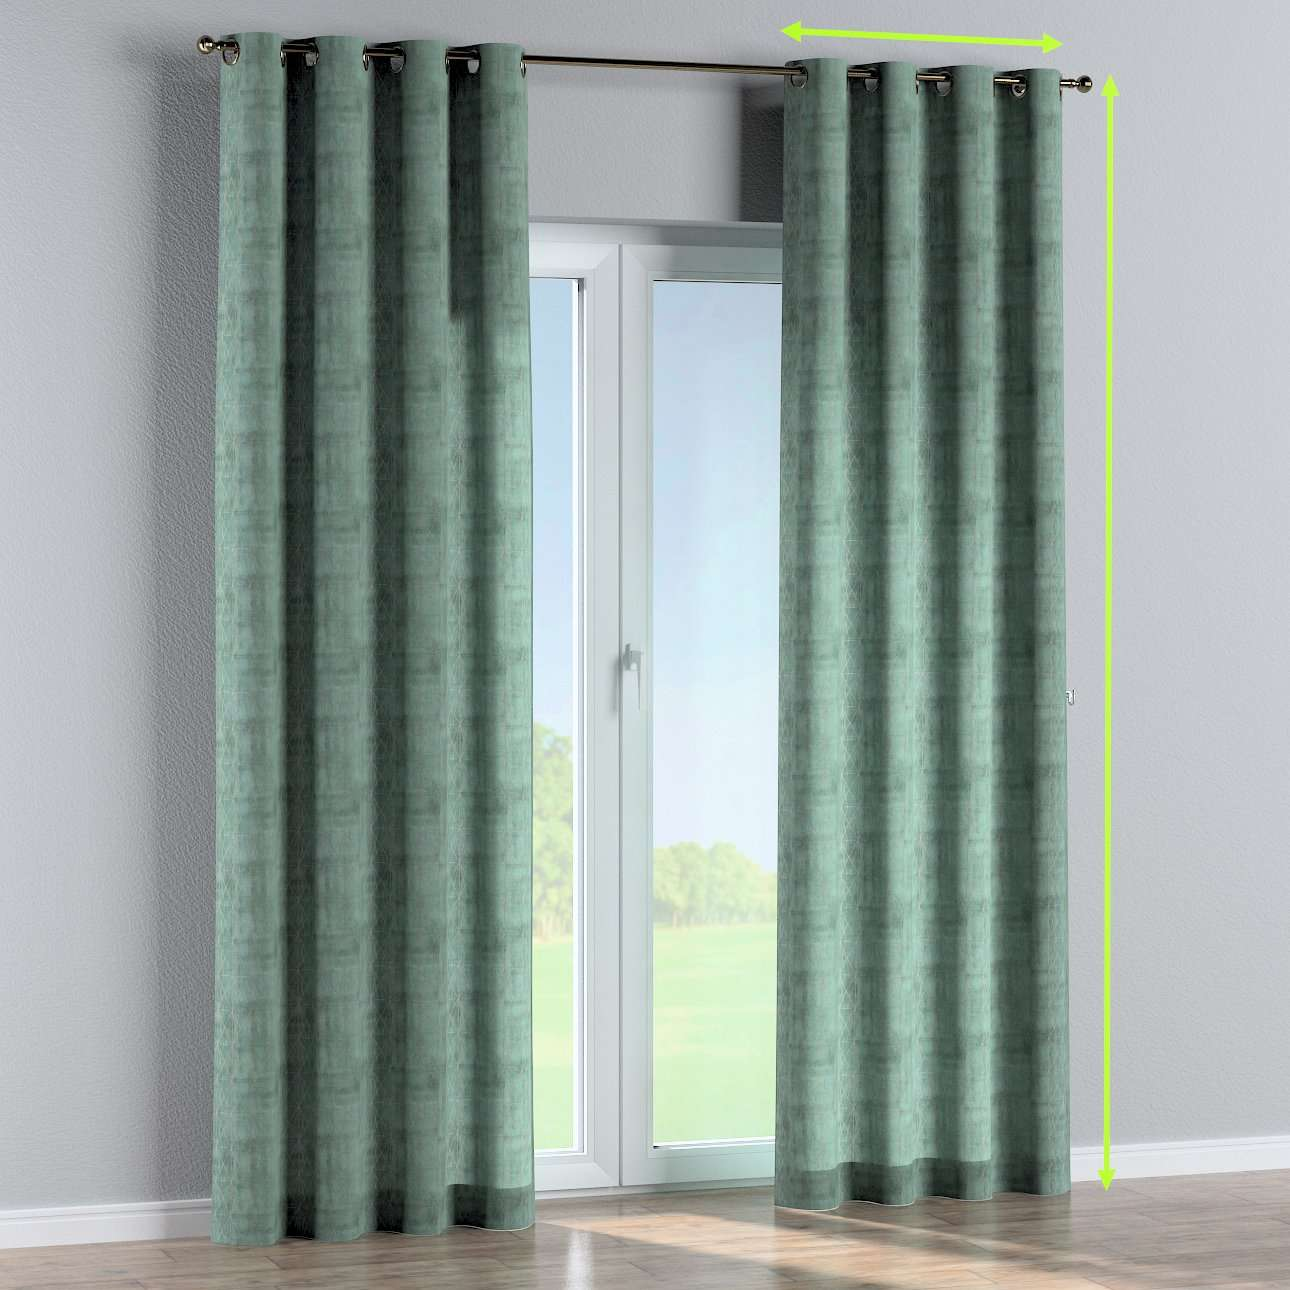 Eyelet lined curtains in collection Comics/Geometrical, fabric: 142-28